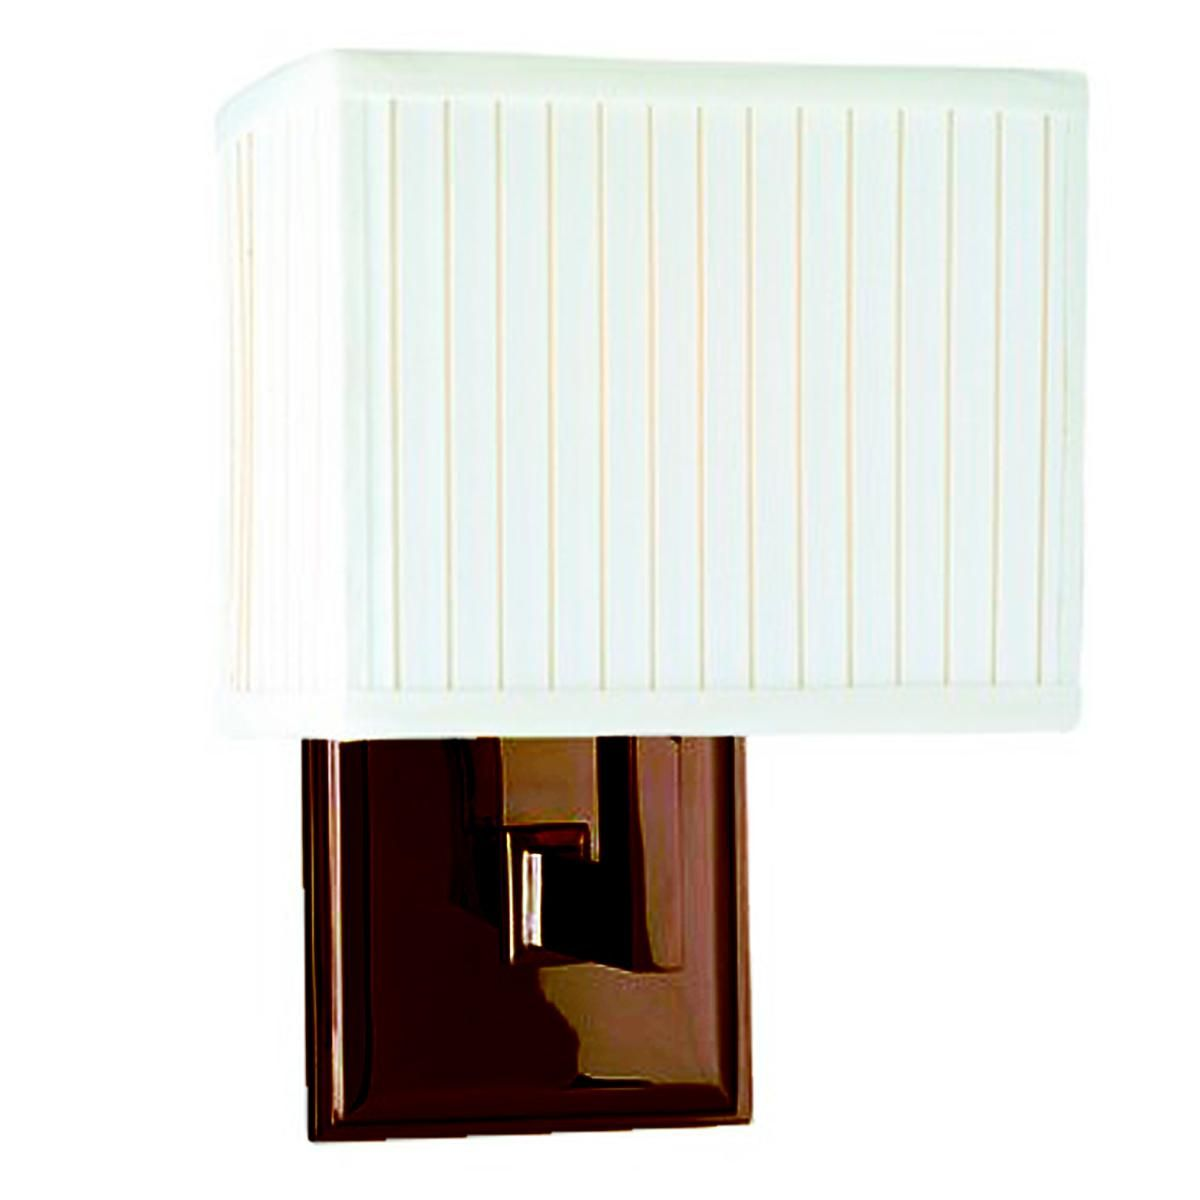 Urban Low Profile Wall Sconce 2 finishes!